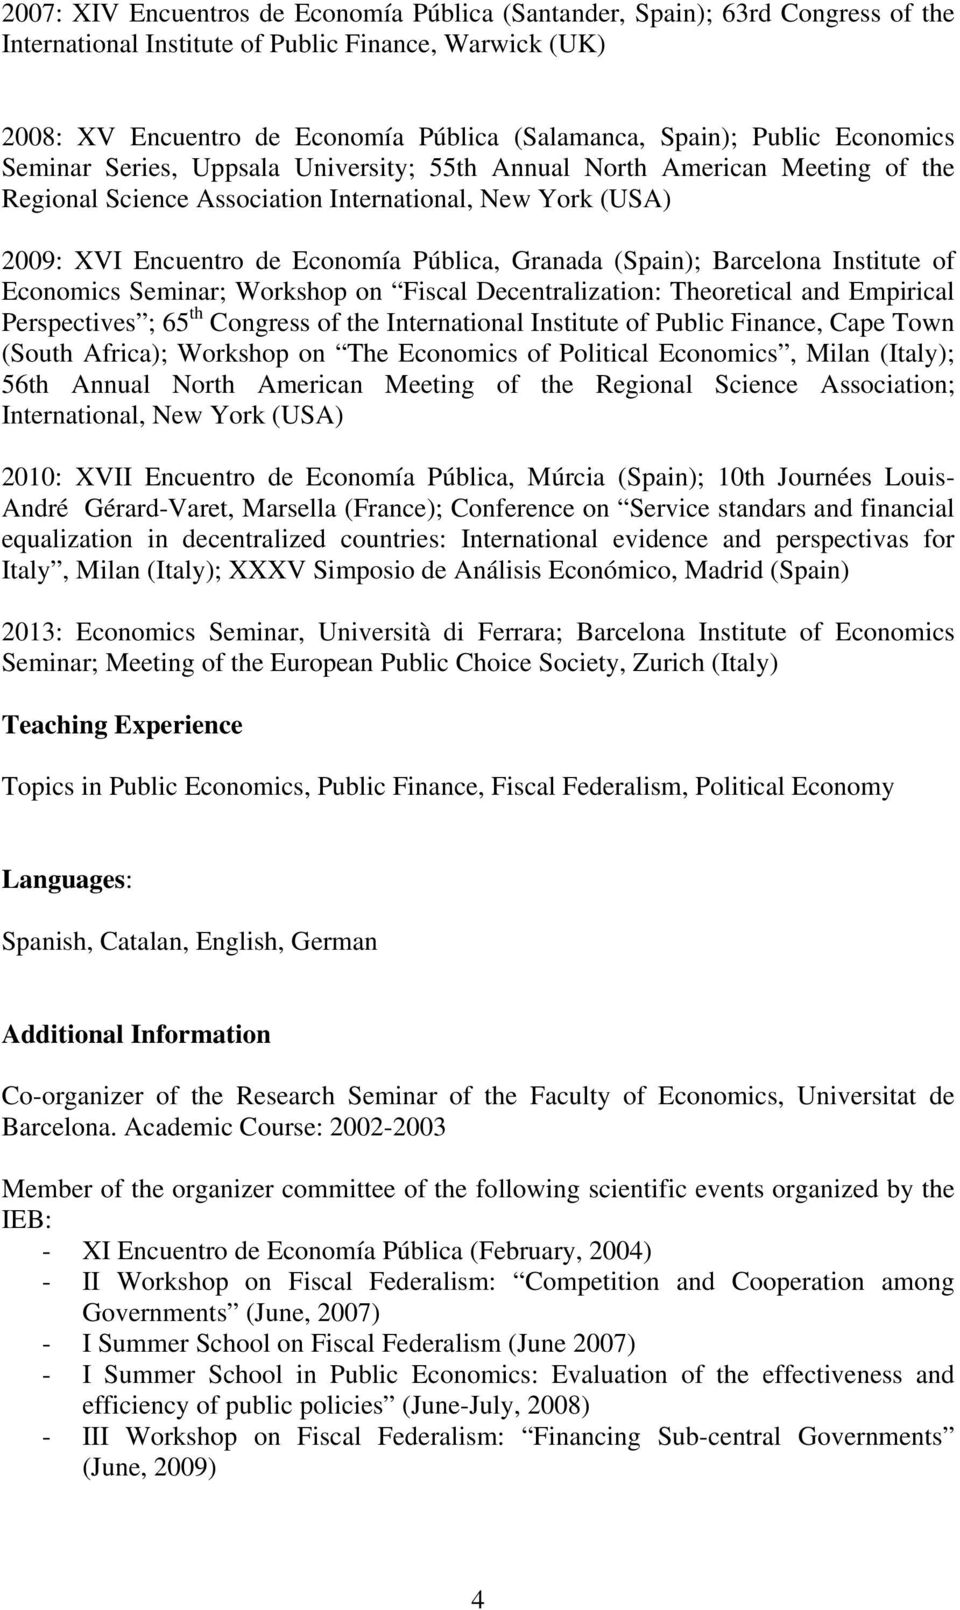 Granada (Spain); Barcelona Institute of Economics Seminar; Workshop on Fiscal Decentralization: Theoretical and Empirical Perspectives ; 65 th Congress of the International Institute of Public